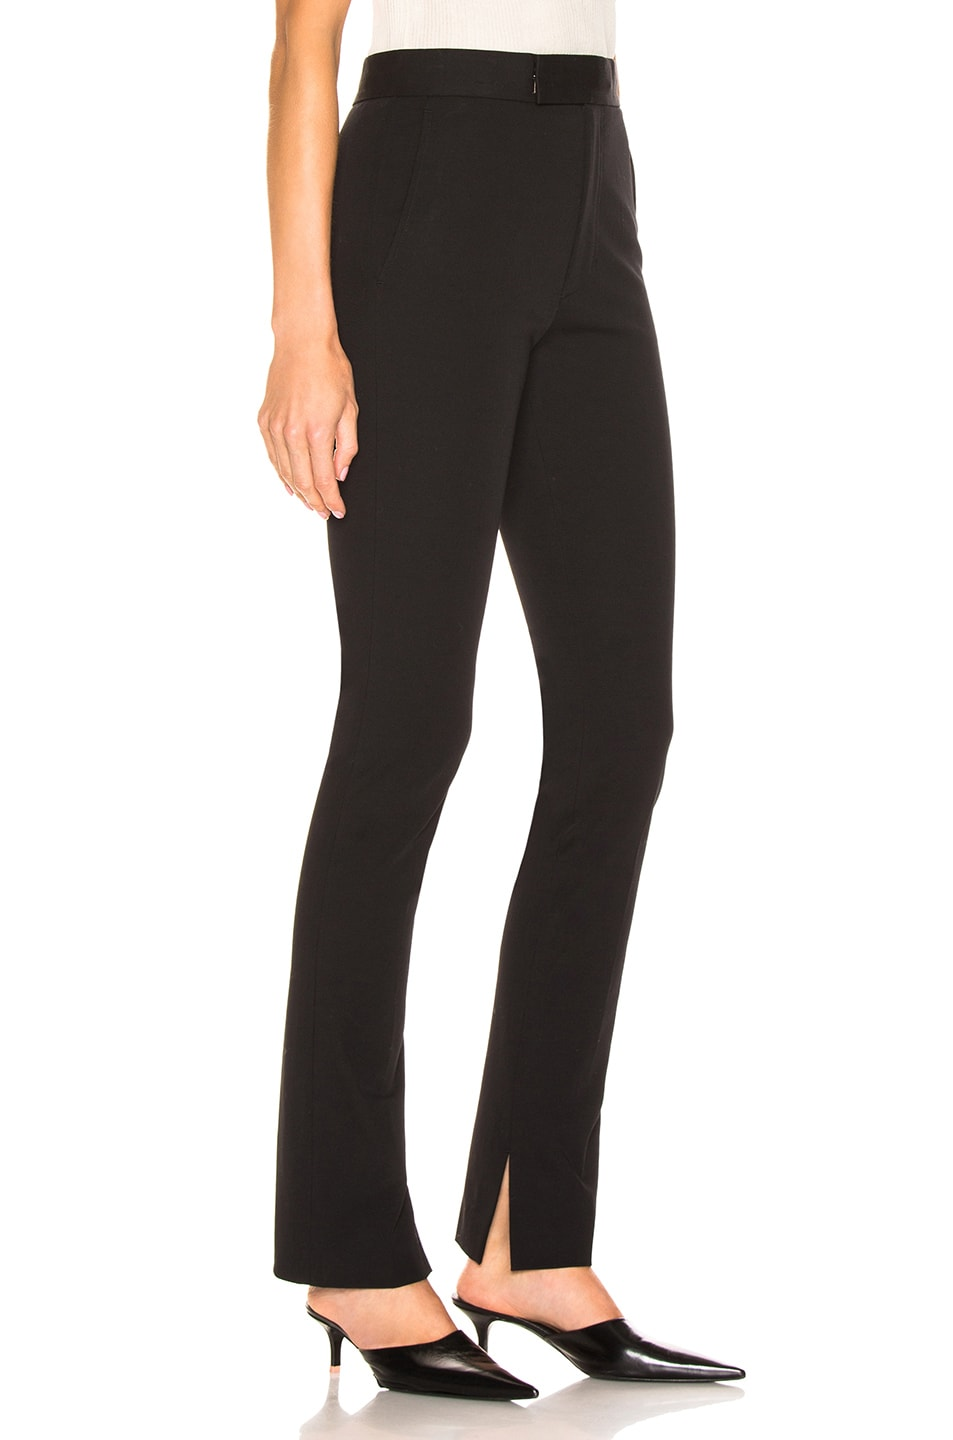 Image 2 of Helmut Lang Rider Legging Pant in Black